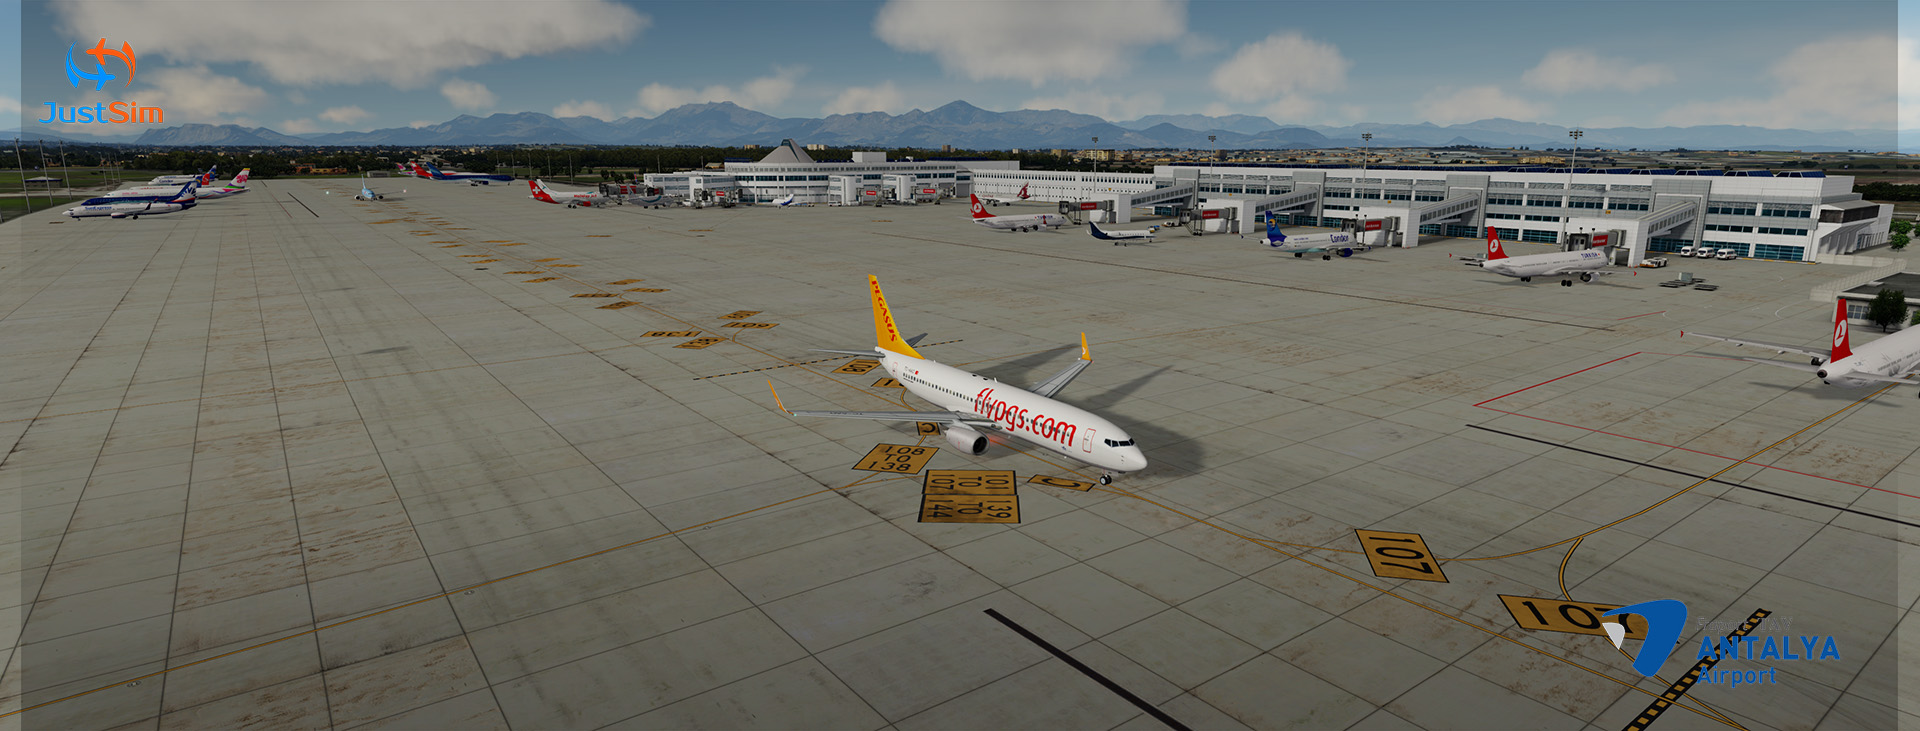 JUSTSIM - ANTALYA INTERNATIONAL AIRPORT LTAI V.2 P3D4.4+